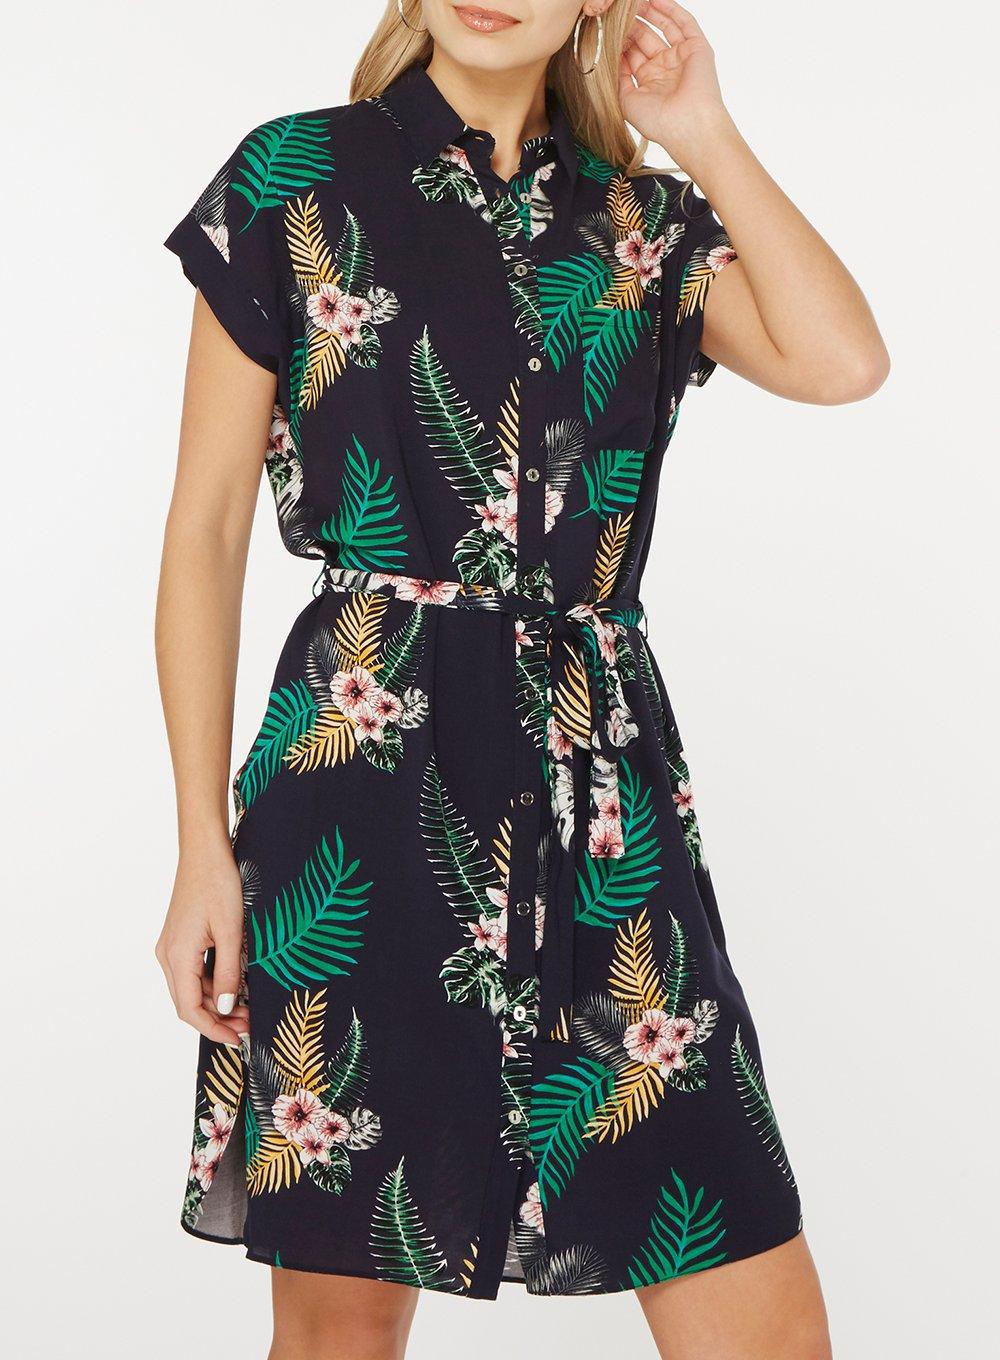 a67fcc6f85b Gallery. Previously sold at  Dorothy Perkins · Women s Tropical Print  Dresses Women s Navy Dresses